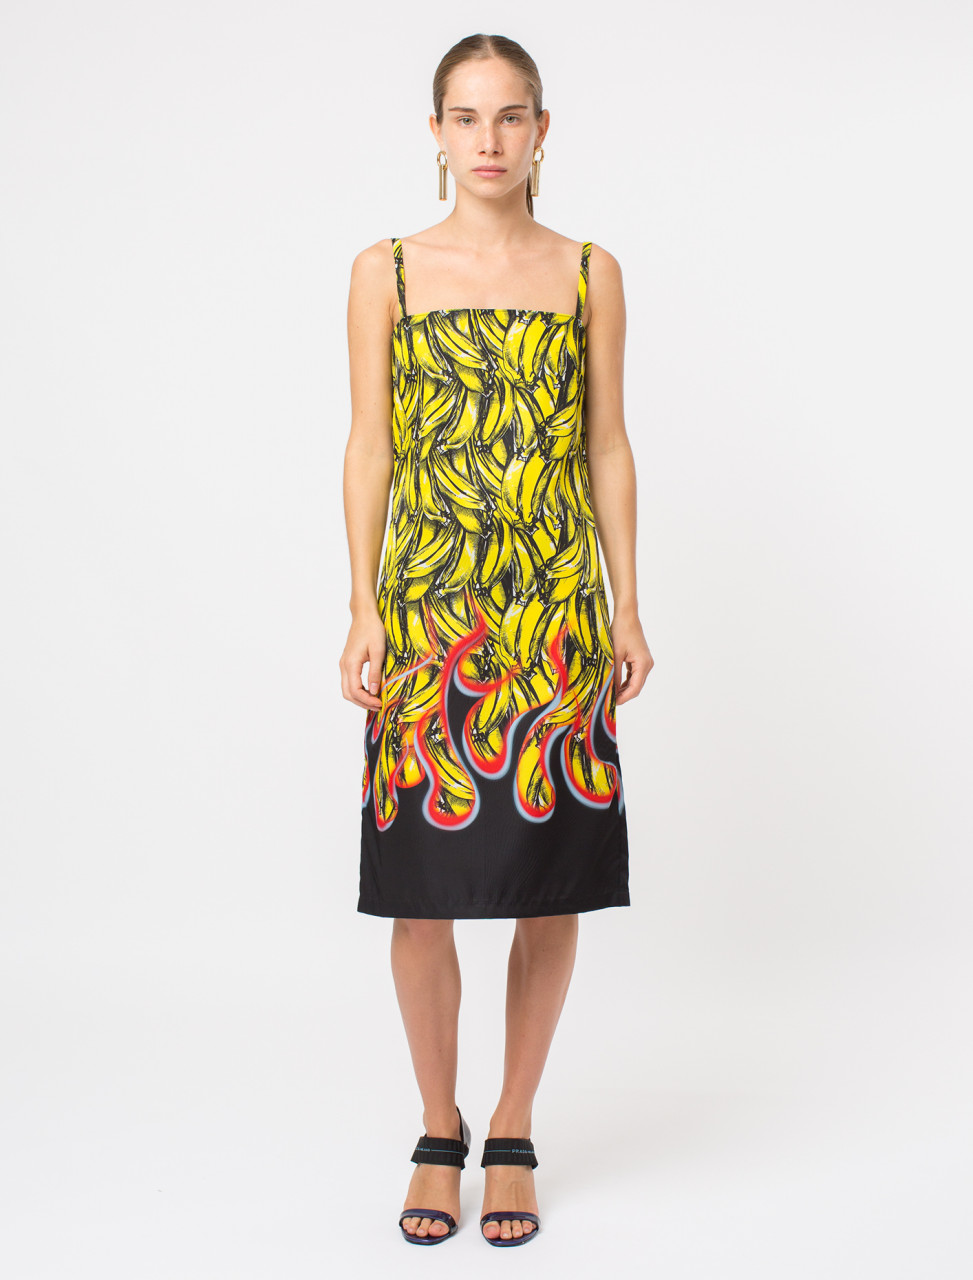 Nylon Banana Flame Print Dress